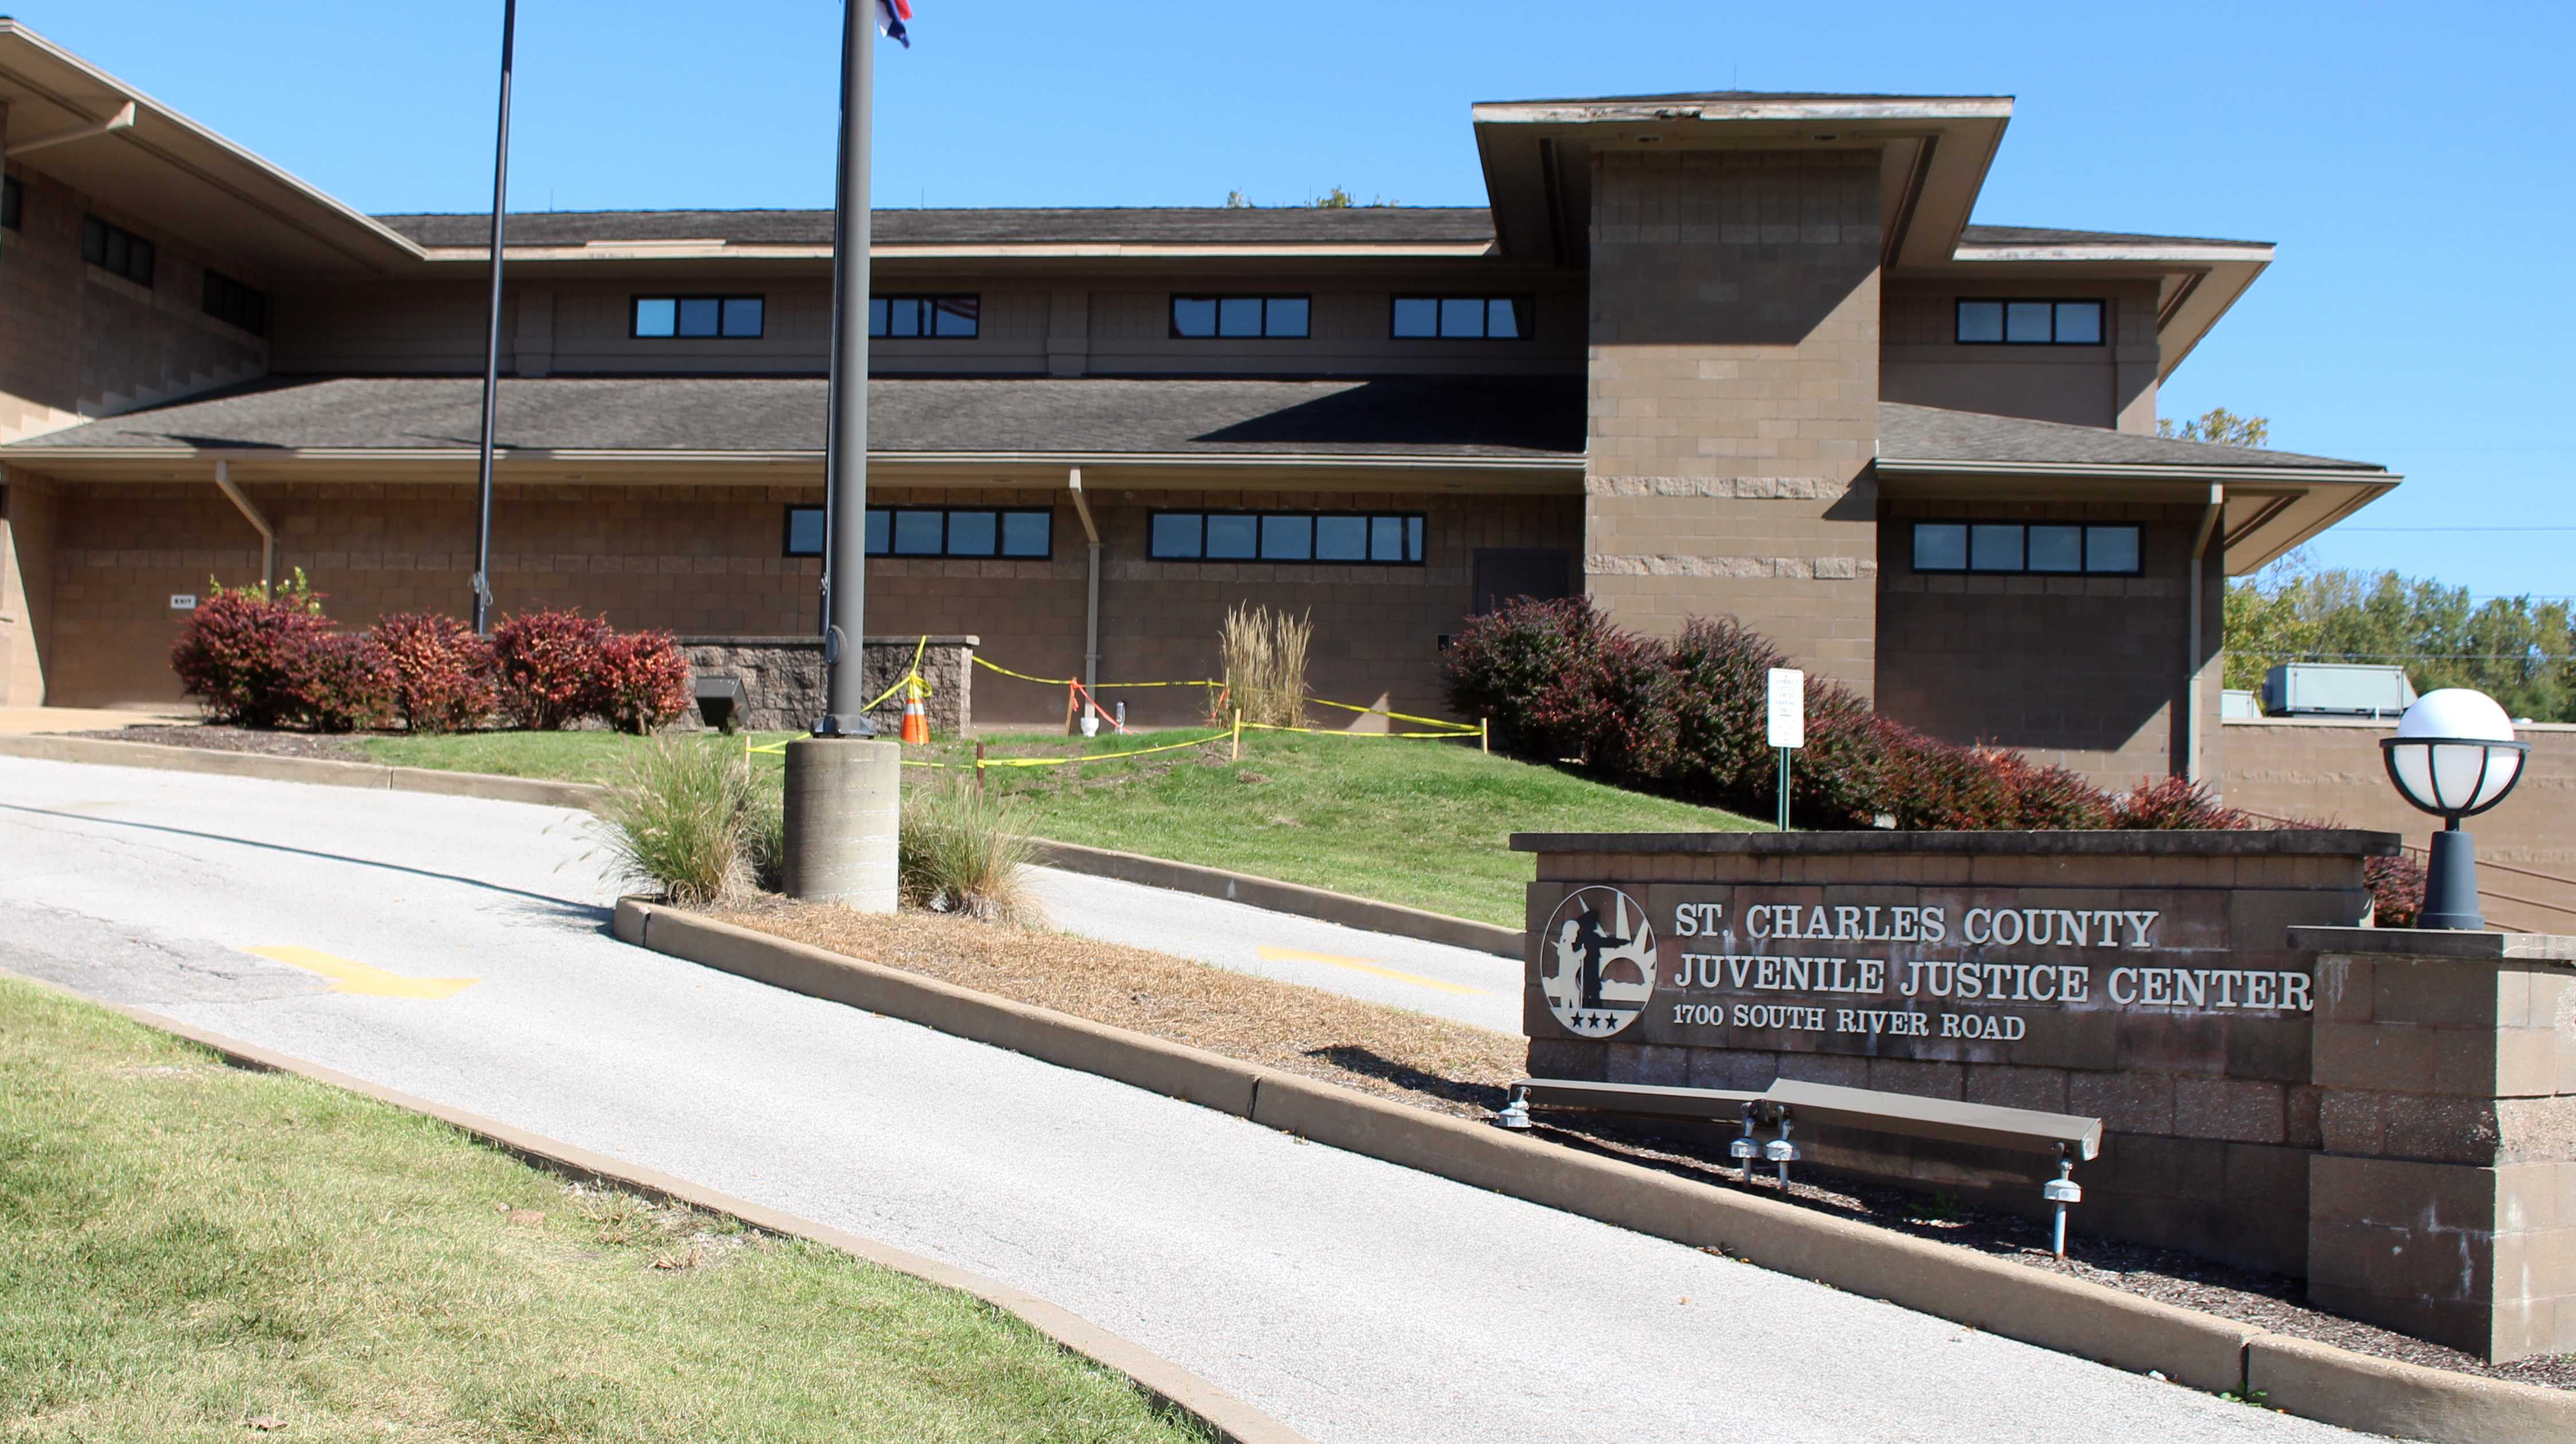 The St. Charles Juvenile Justice Center will incorporate changes to their handbook made by Lindenwood students later this year. Photo by Kyle Rainey